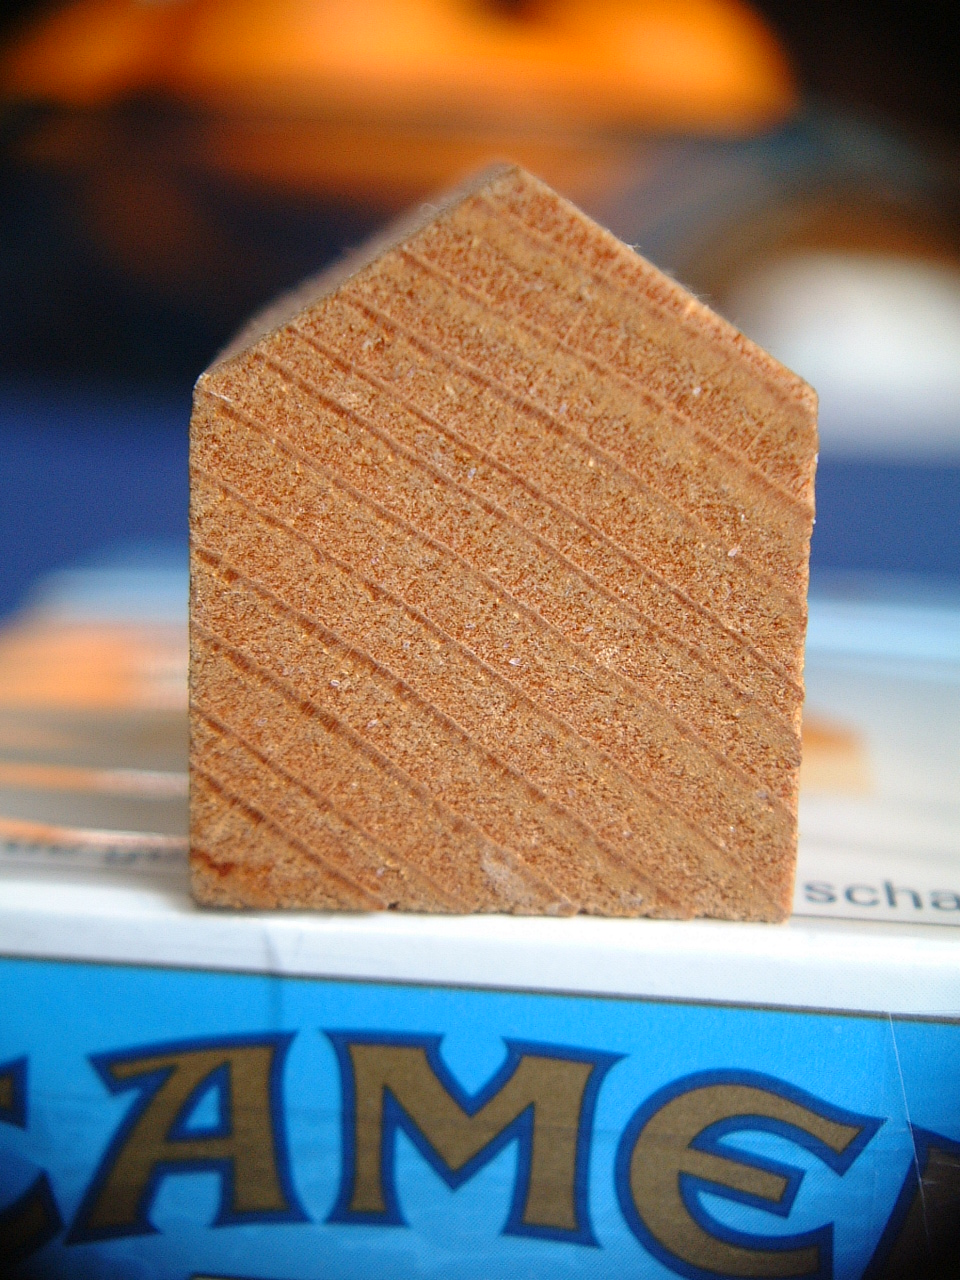 maartent monopoly house on a pack of cigarettes camel game royalty